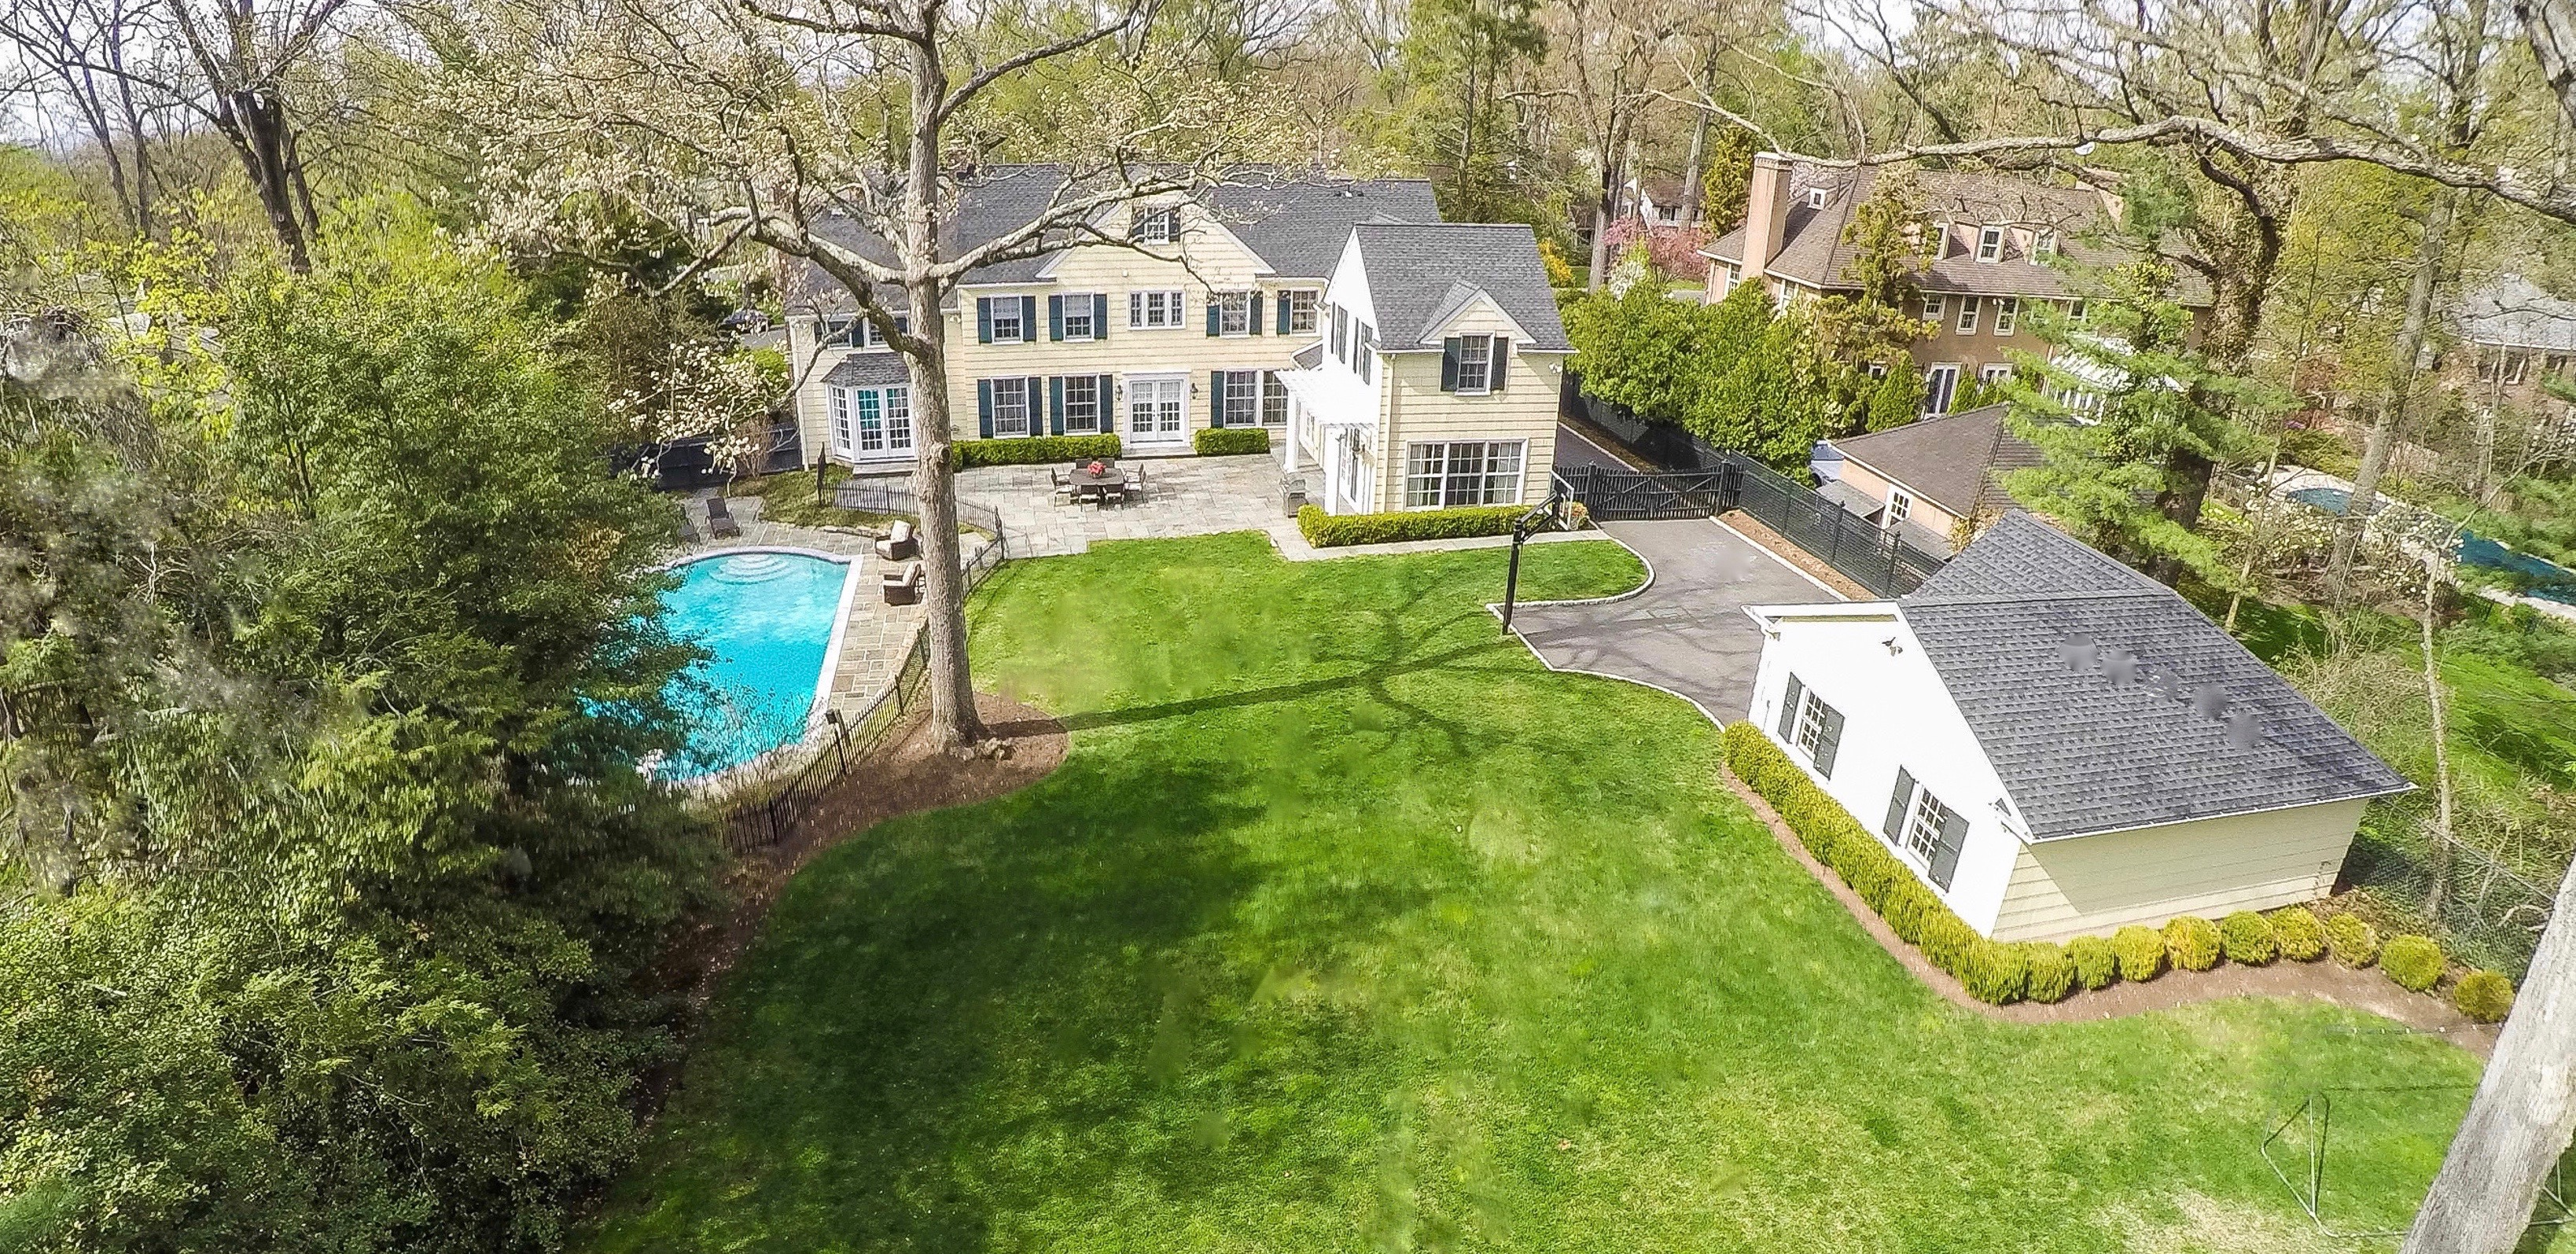 Aerial photography highlights your property